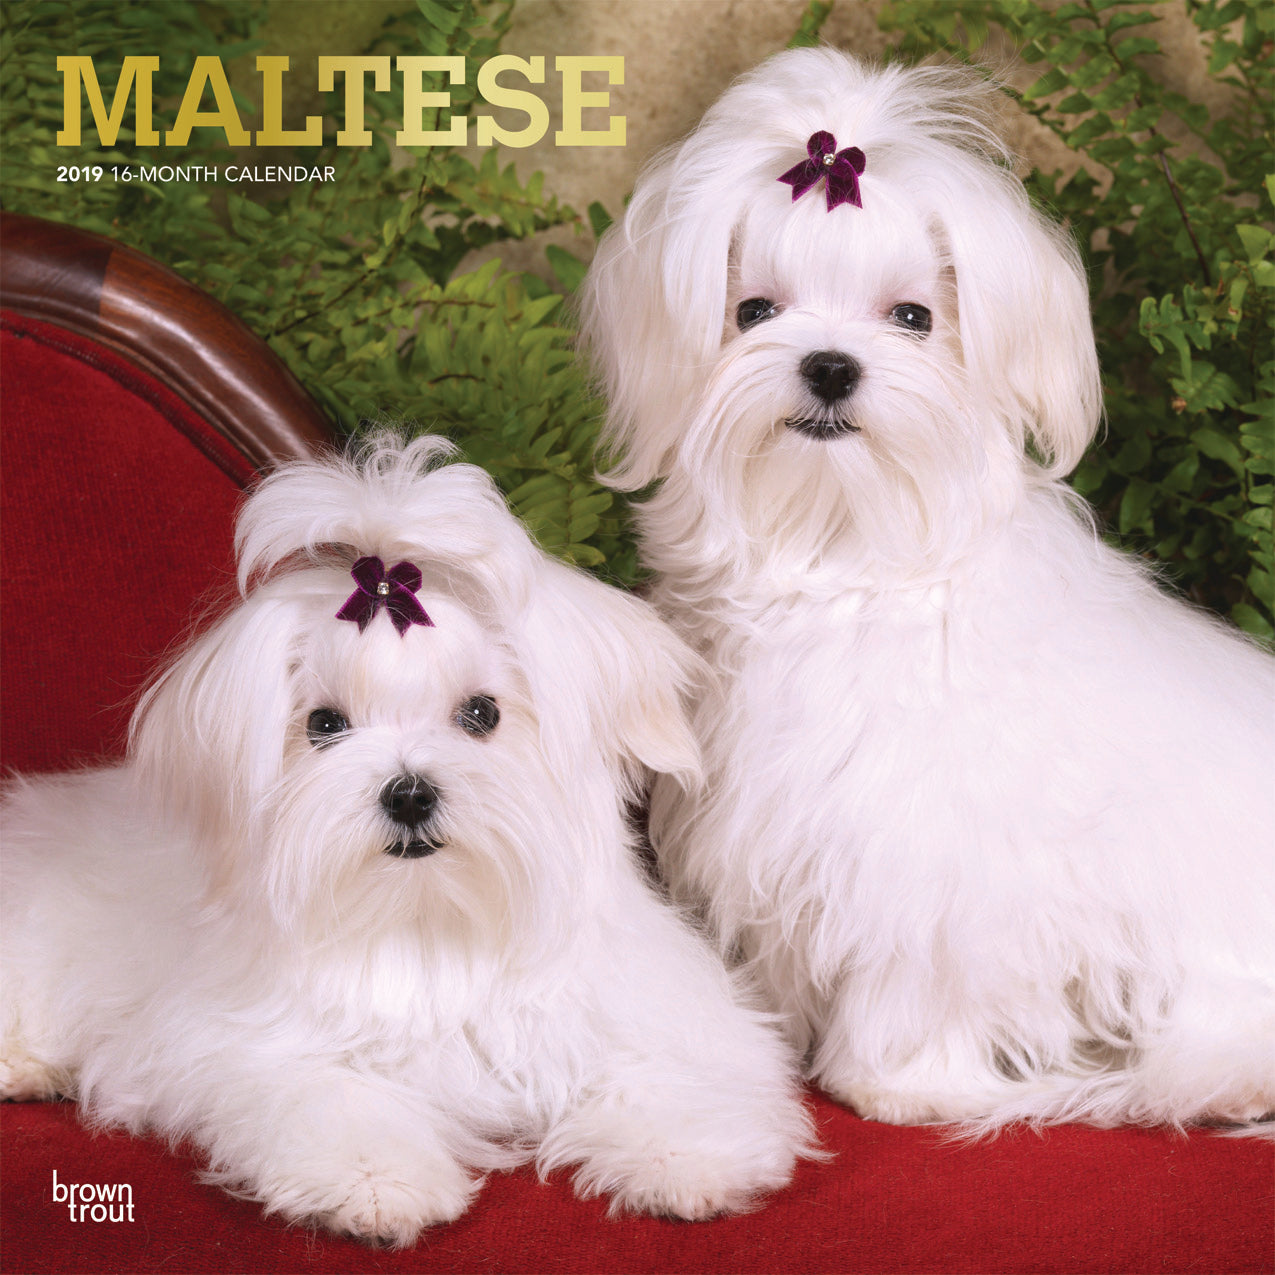 Maltese 2019 Wall Calendar Feeds A Dog For 4 Days A Dog S Love